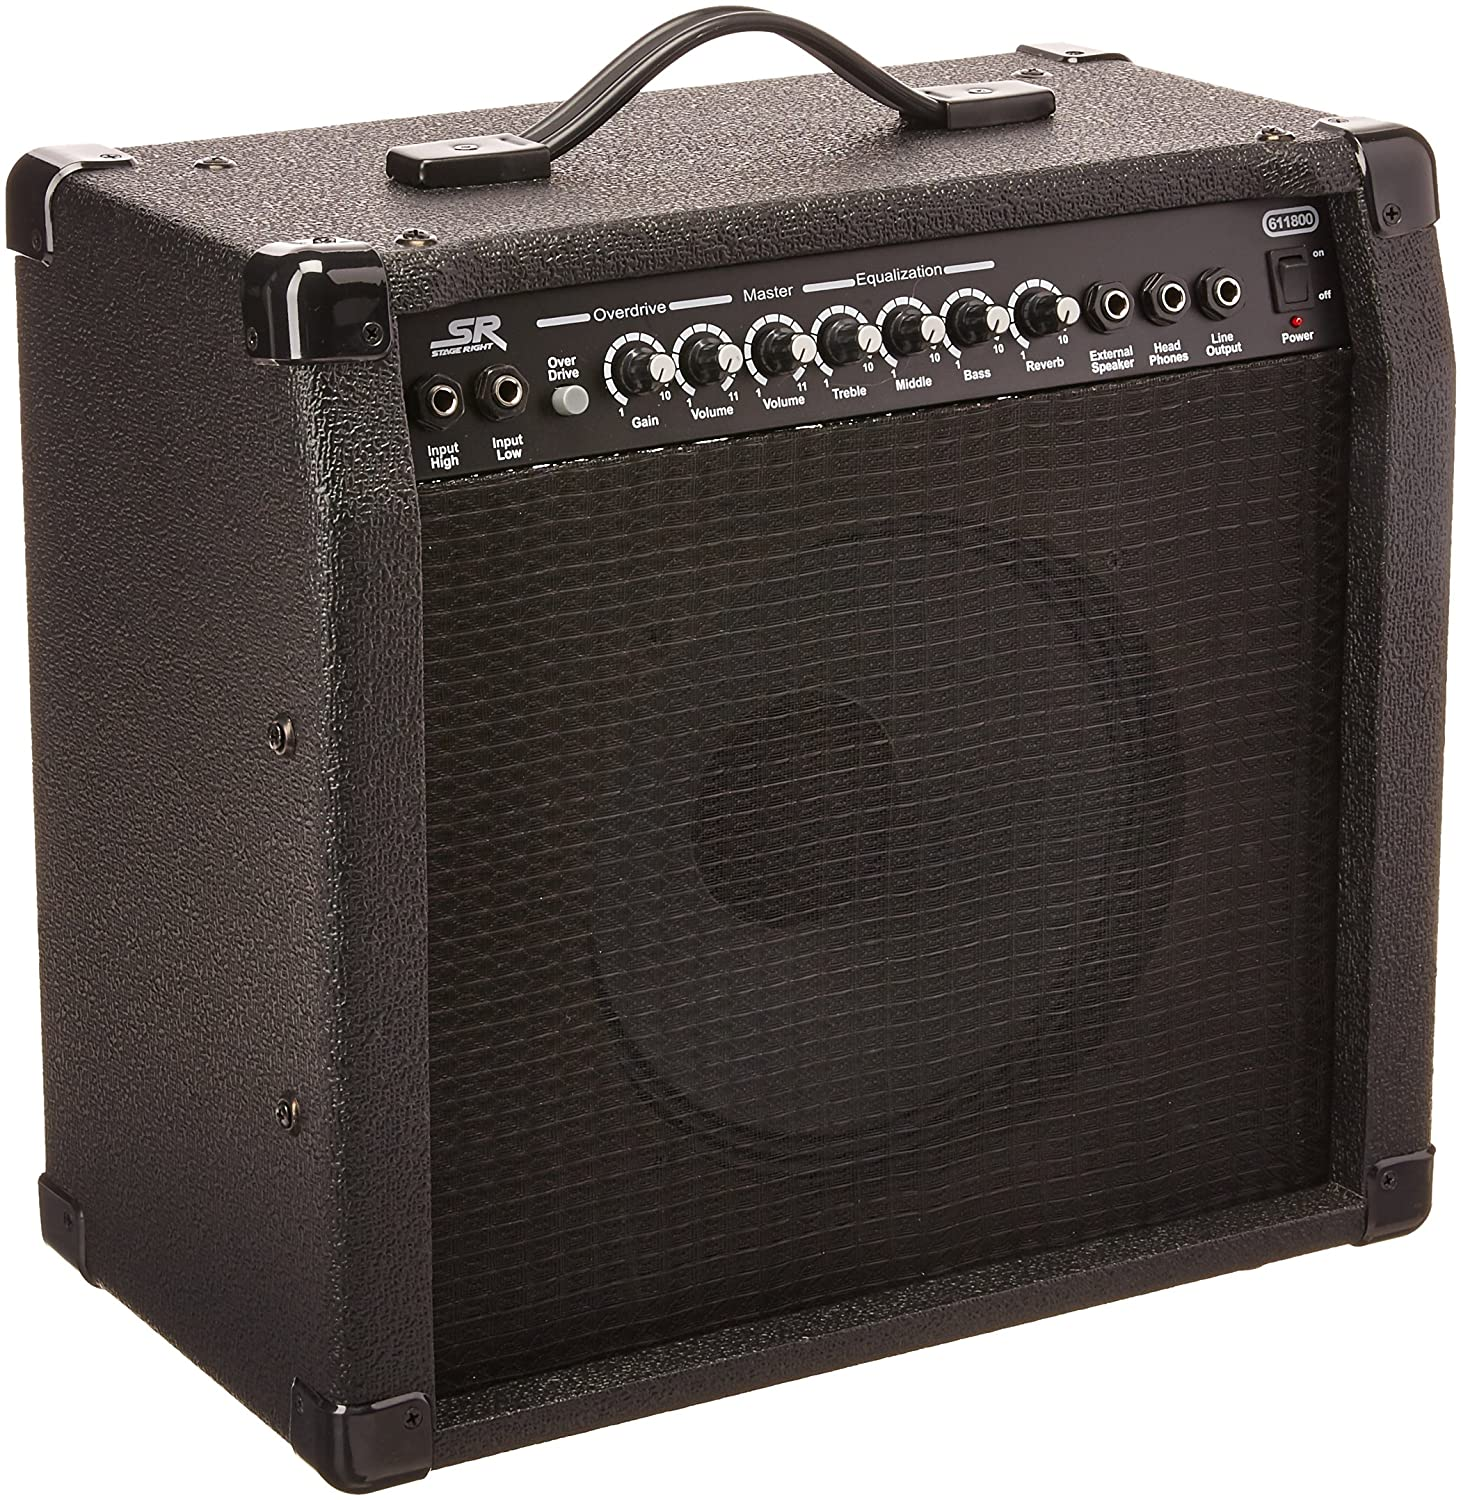 Monoprice 100-Watt 10x100 Guitar Combo Amplifier - Black with Spring Reverb,  100 inch 10-ohm Speaker, High & Low Inputs, Headphone Output For Electric